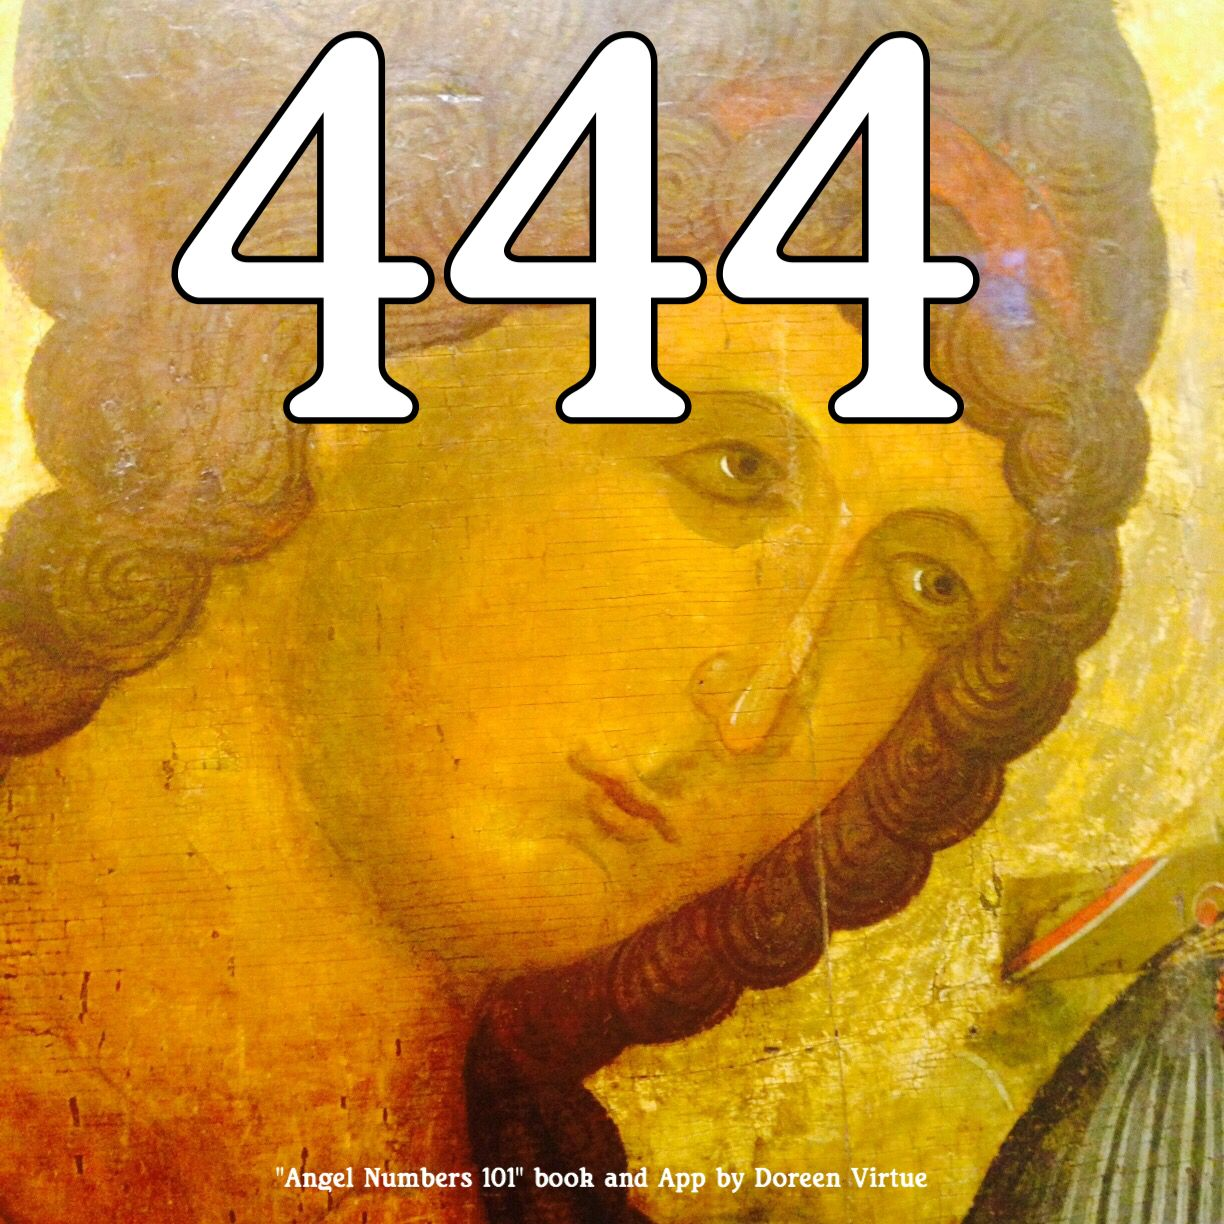 What does 444 mean 444 means that the angels are with you its a what does 444 mean 444 means that the angels are with you its a biocorpaavc Choice Image